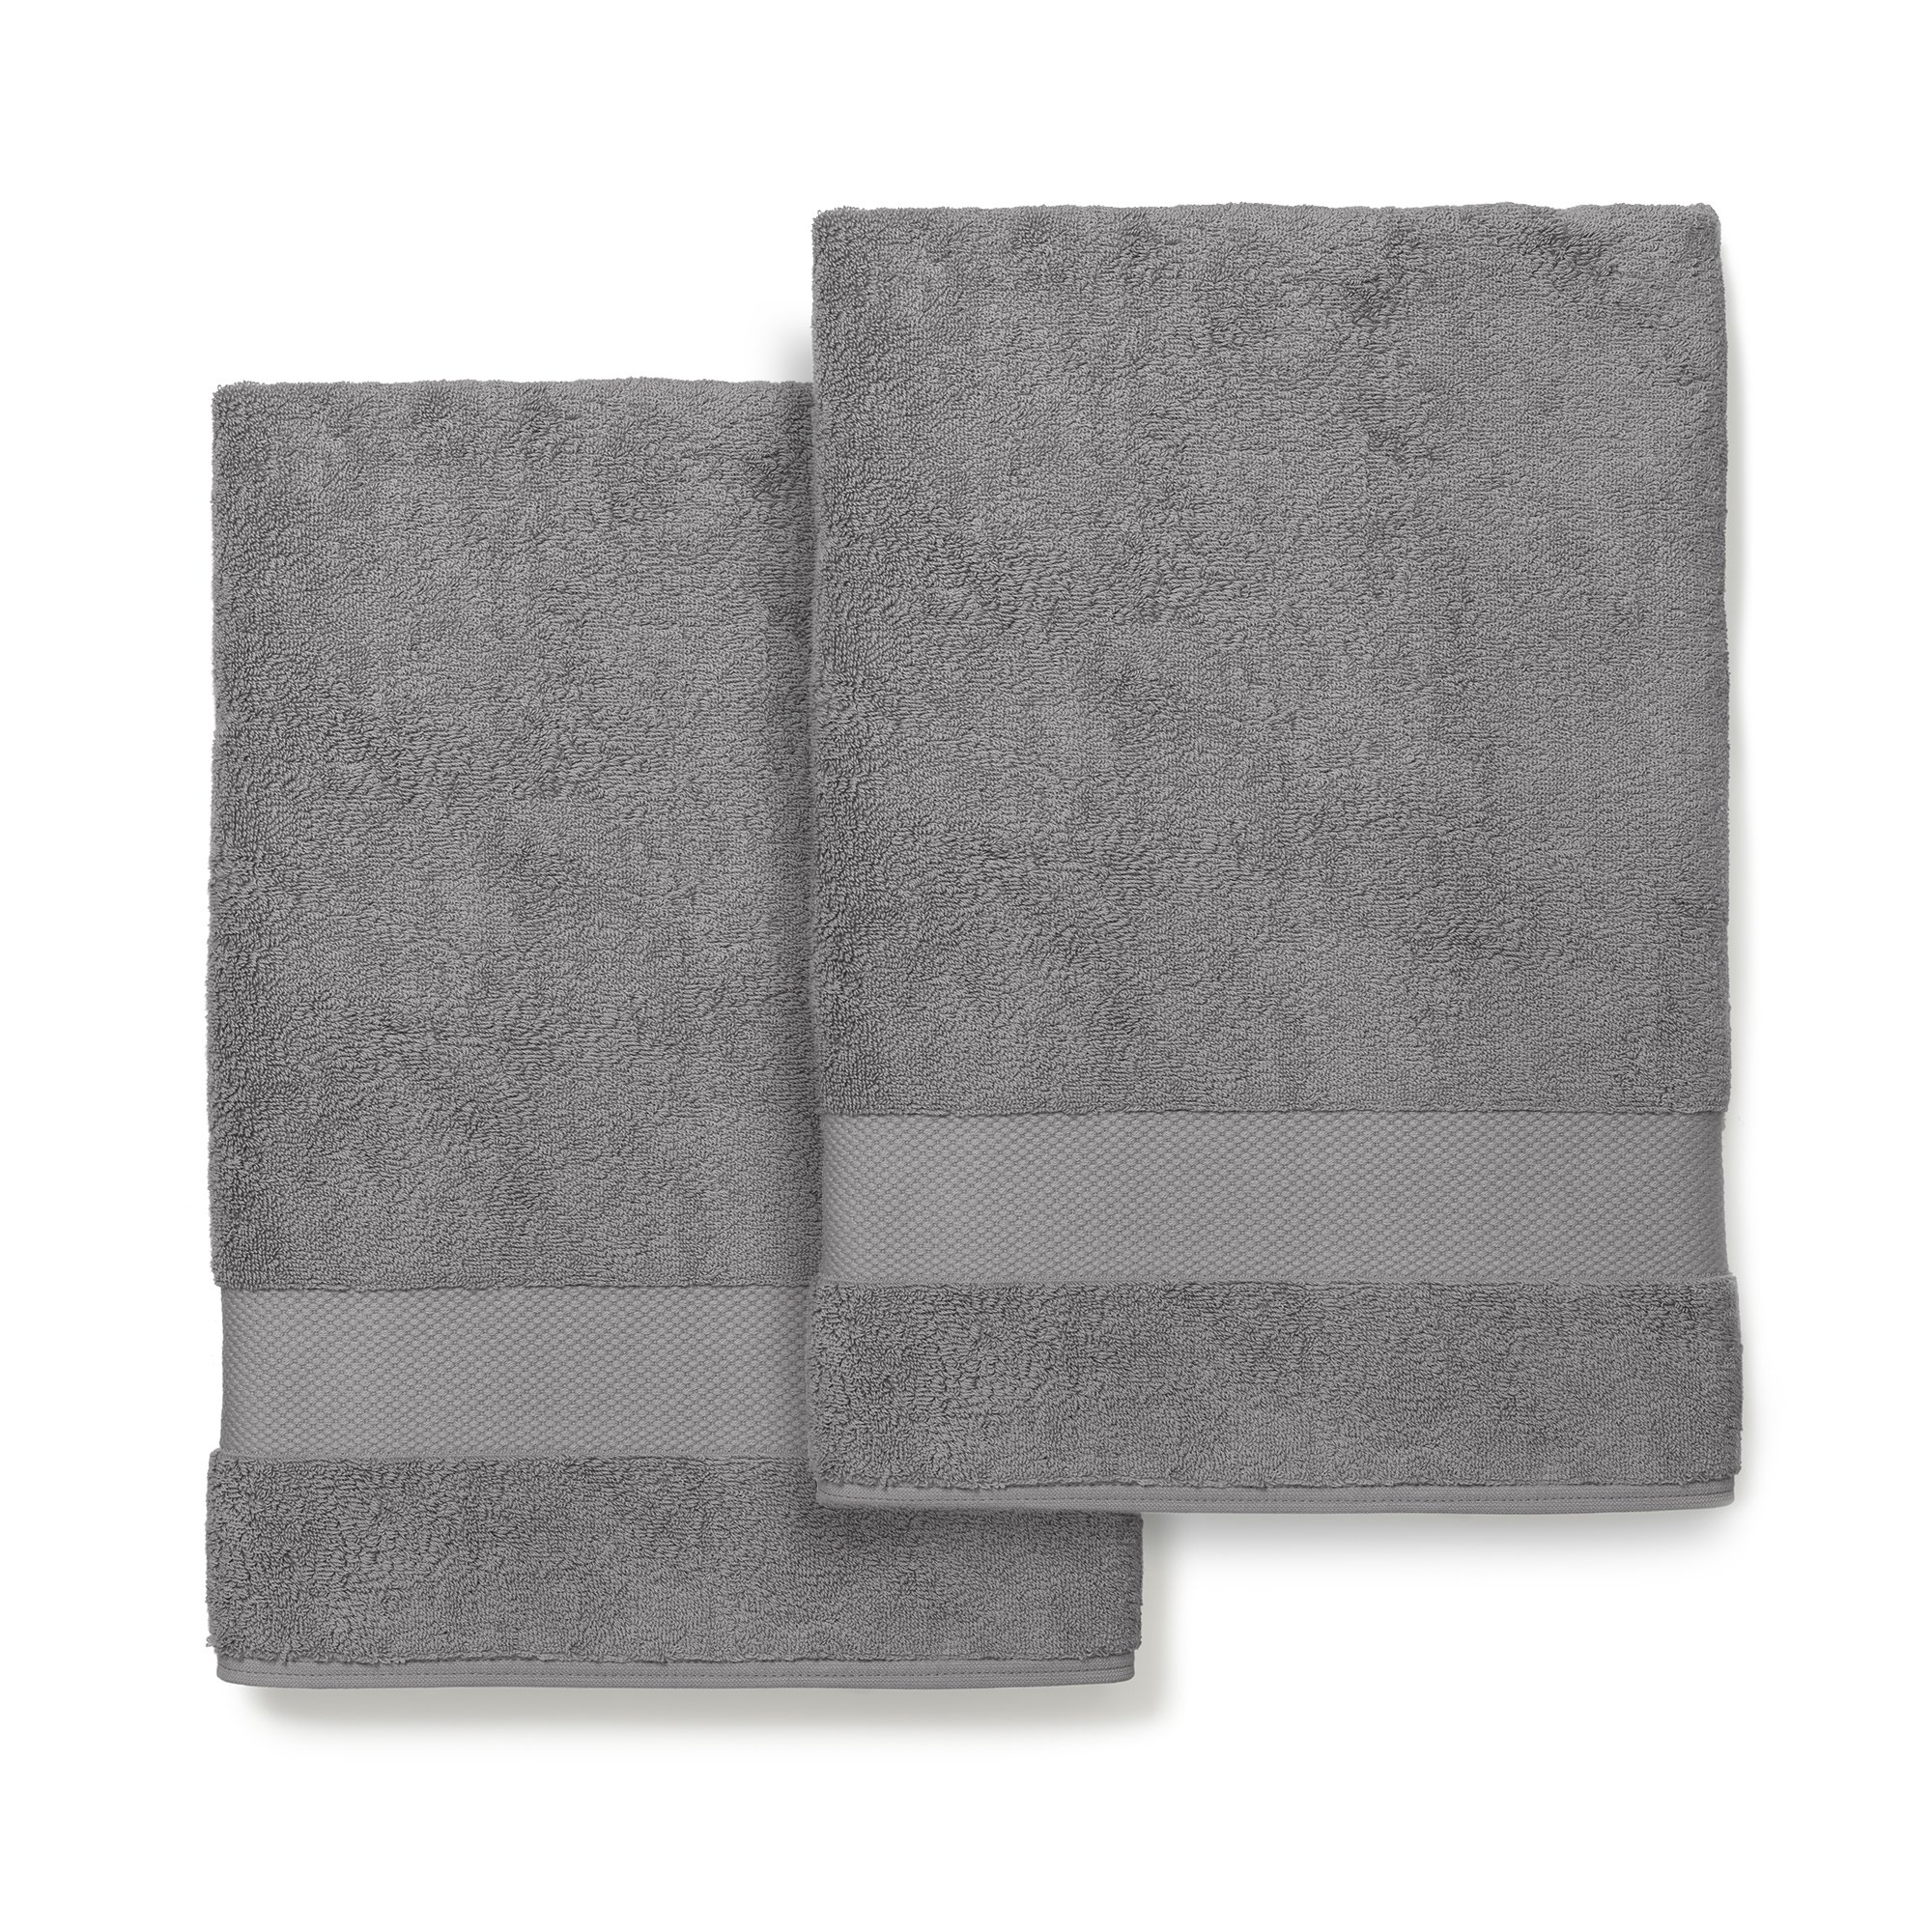 Boll & Branch Luxury Bath Sheets - Fair Trade Organic Cotton Large Bath Towels - Stone, 2 Pack